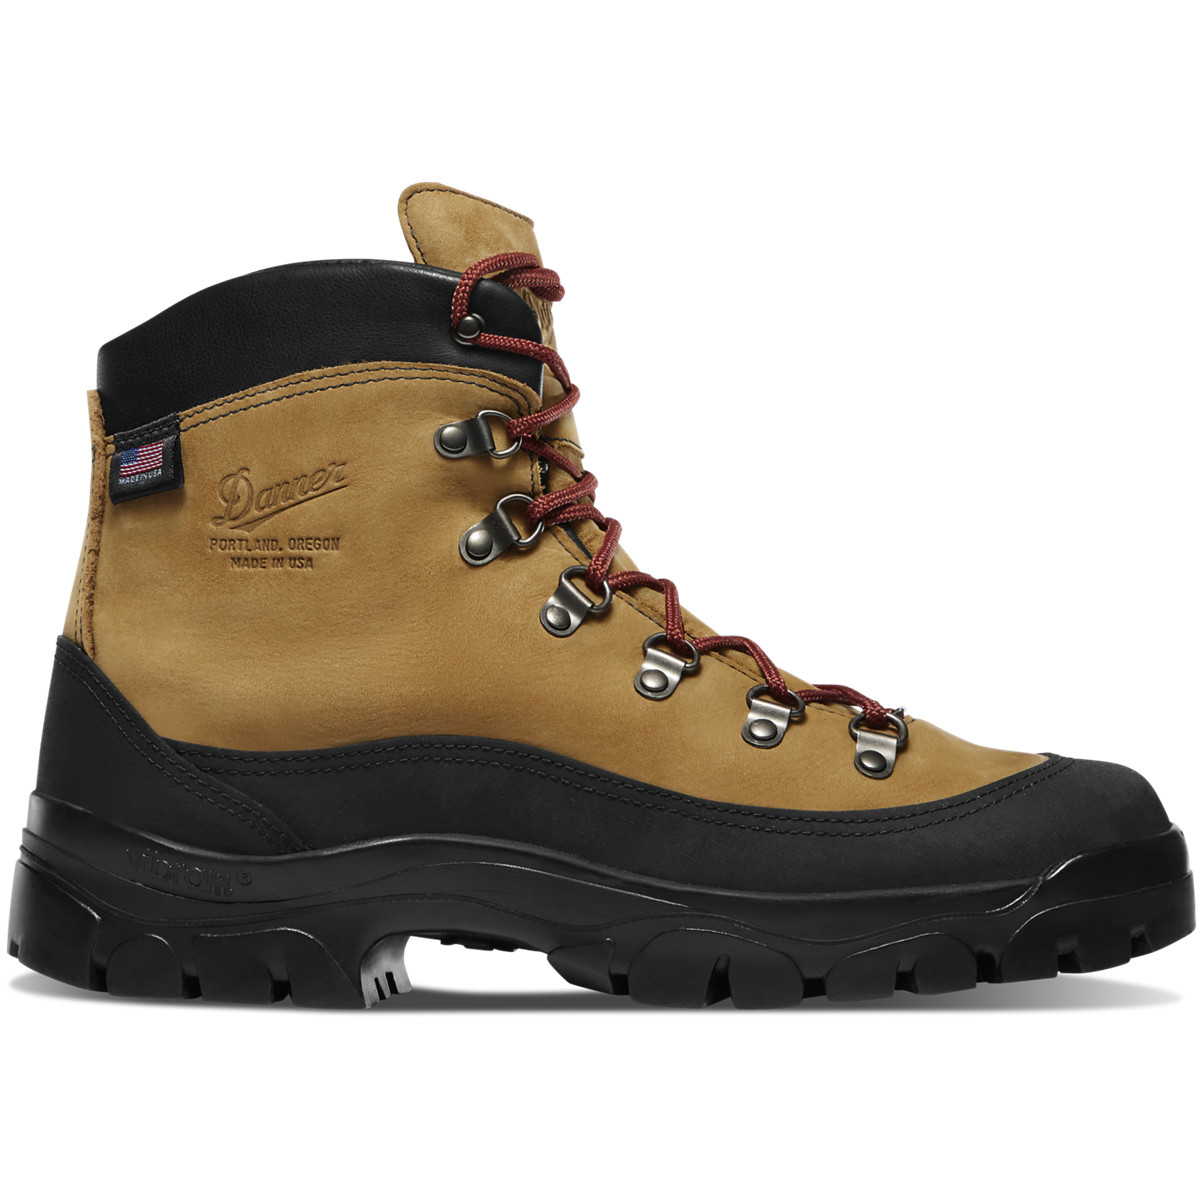 Danner Boots: AW13 Collection recommendations